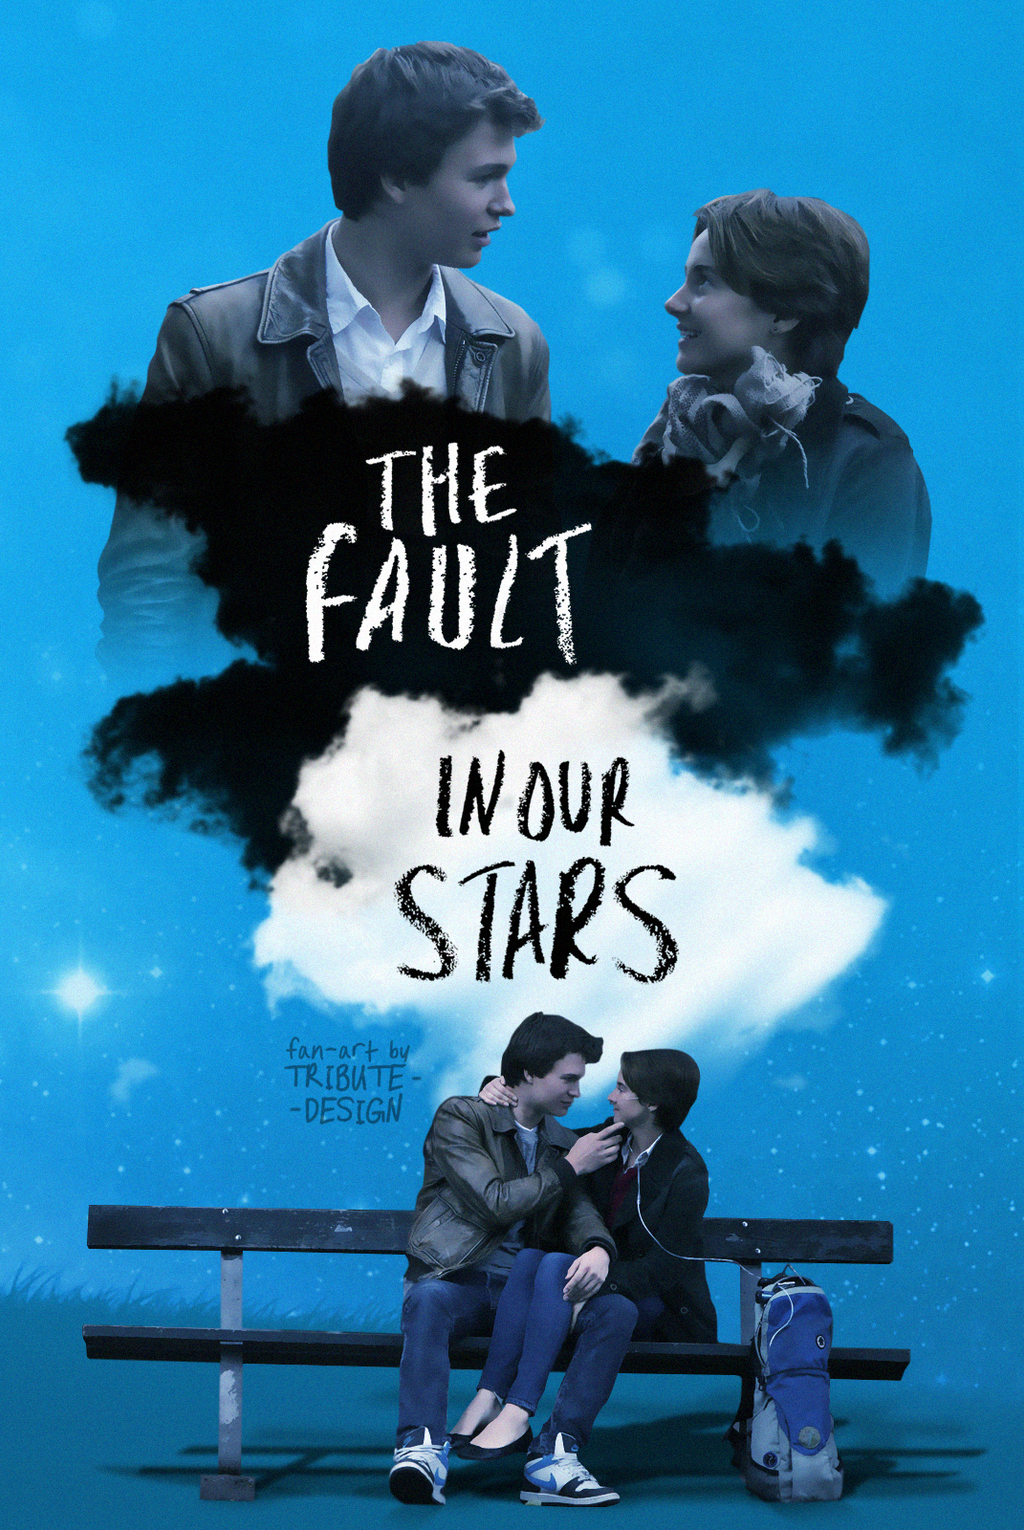 Fantastic Wallpaper Movie The Fault In Our Stars - the_fault_in_our_stars_poster_by_tributedesign-d739z7b  Photograph_43999.png